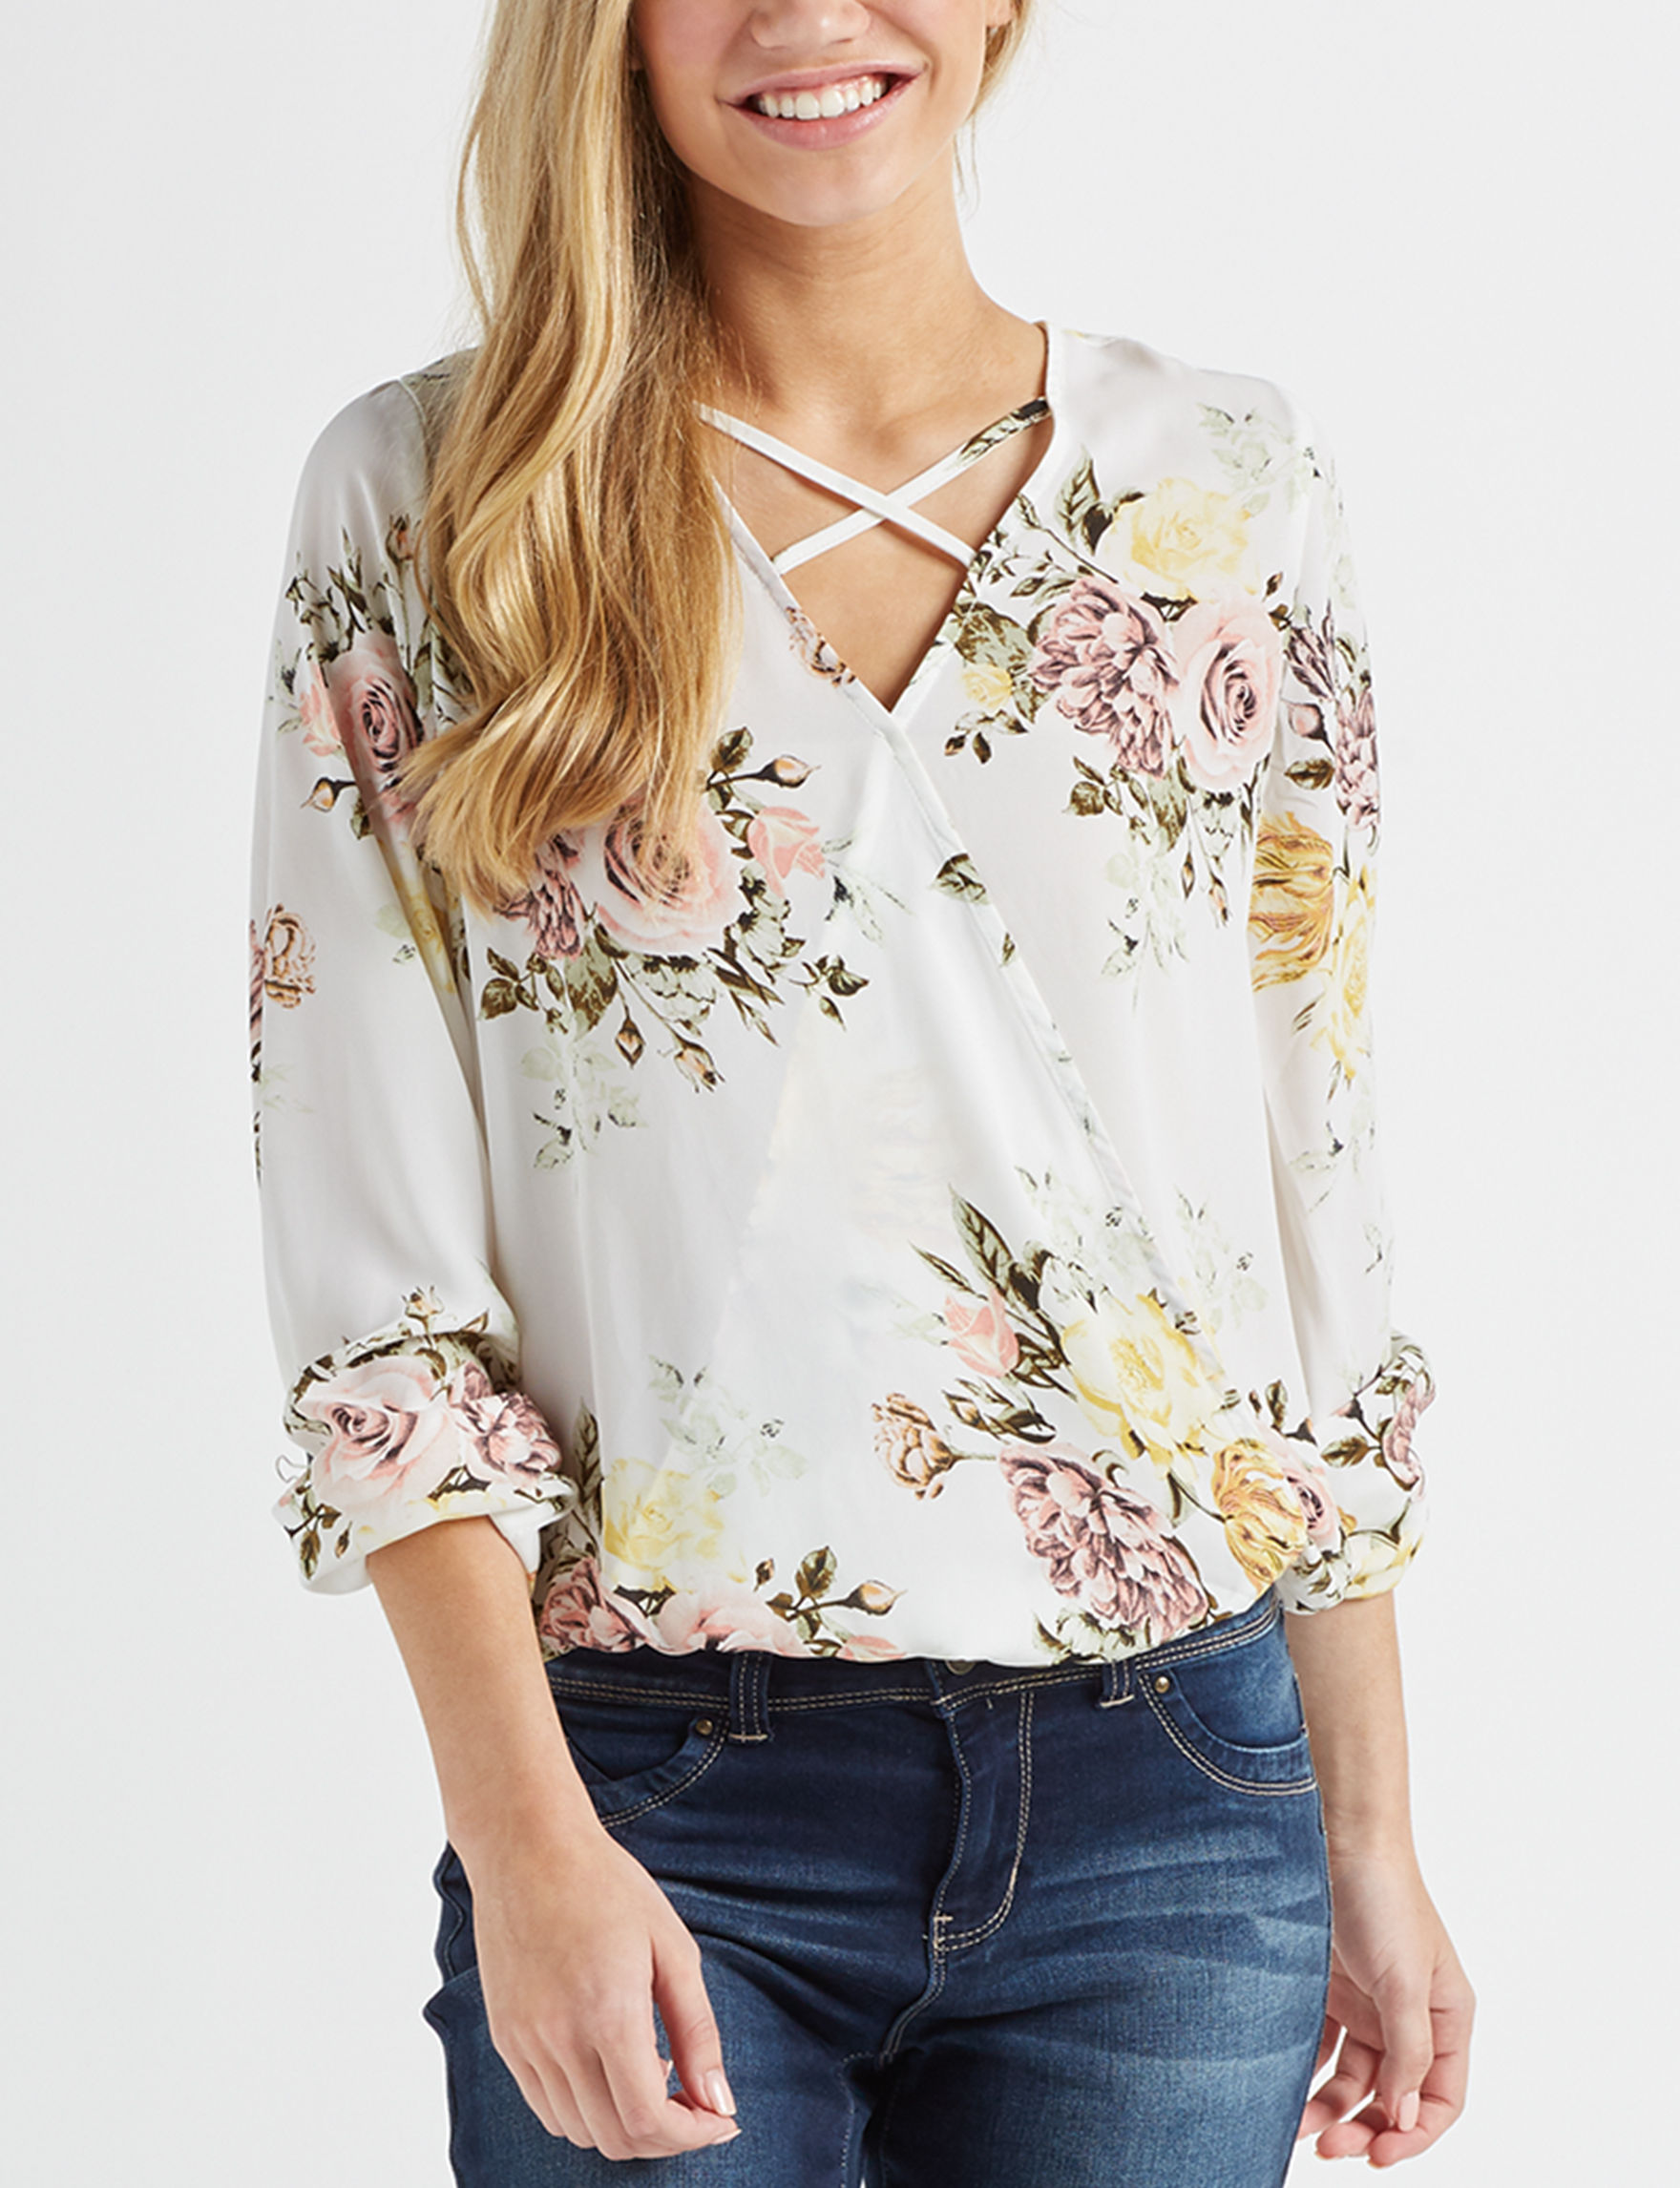 Wishful Park Ivory Floral Shirts & Blouses